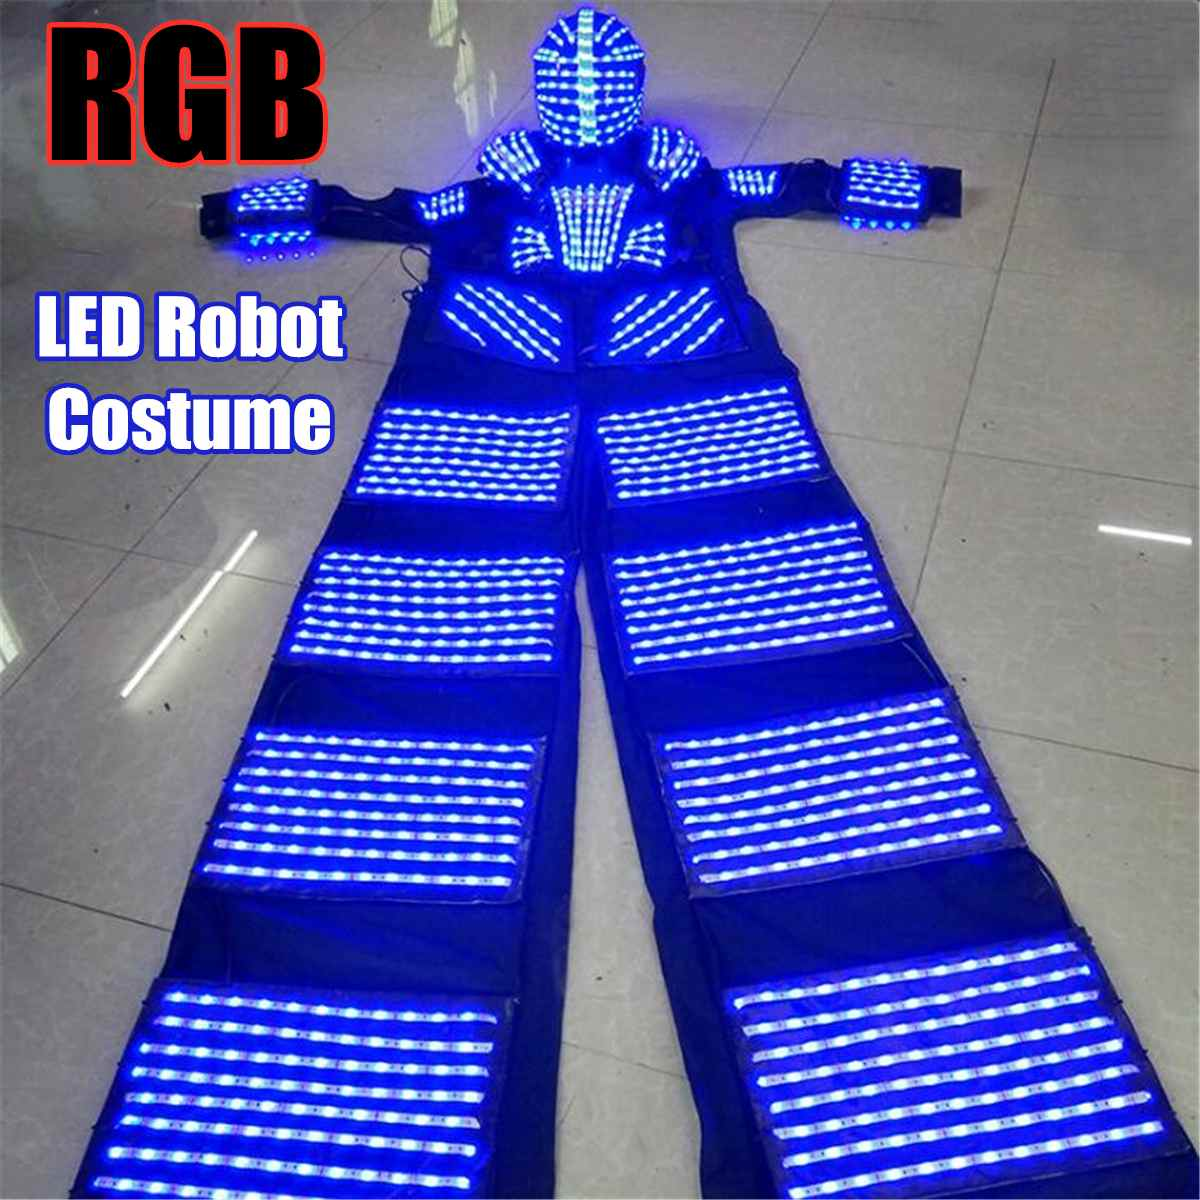 110-240v RGB LED Lights Costumes LED Dancing Costume LED Robot Suit For Party Performance Electronic Music Festival~ DJ Show